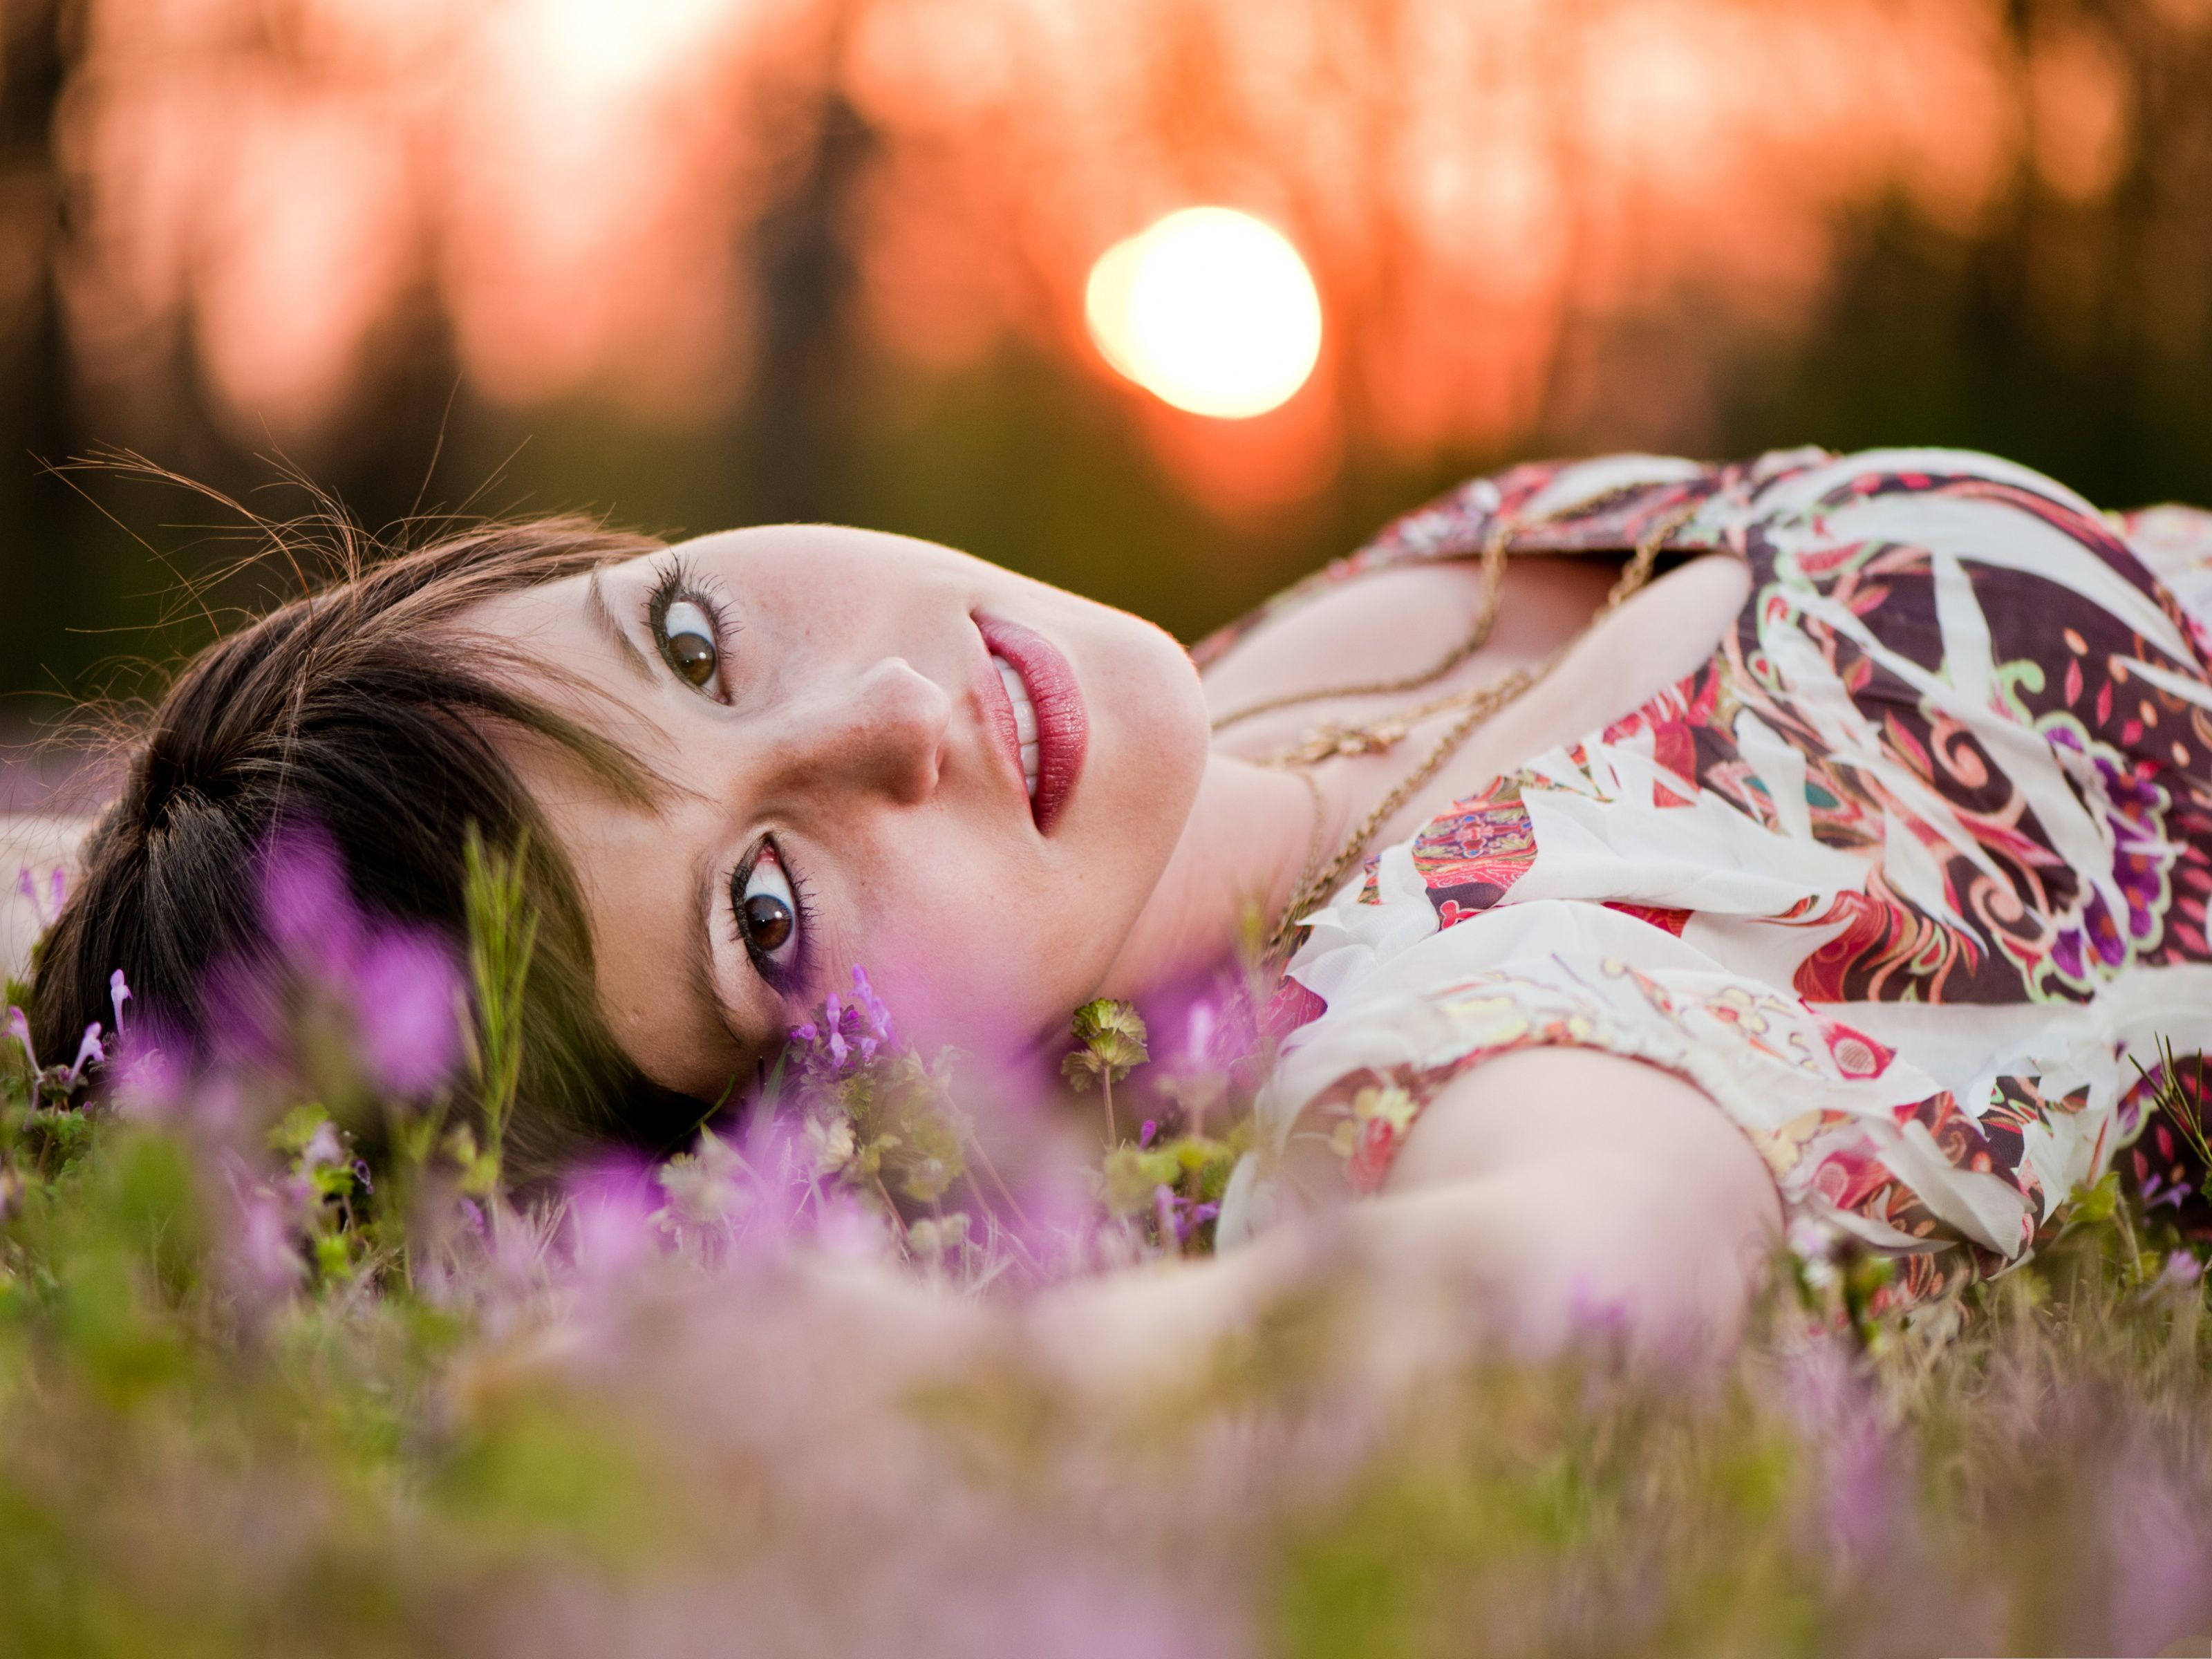 Beautiful Girl Outdoor, Amazing Girl Lying on Grass and Flowers, Snowy White Skin 3200X2400 free ...